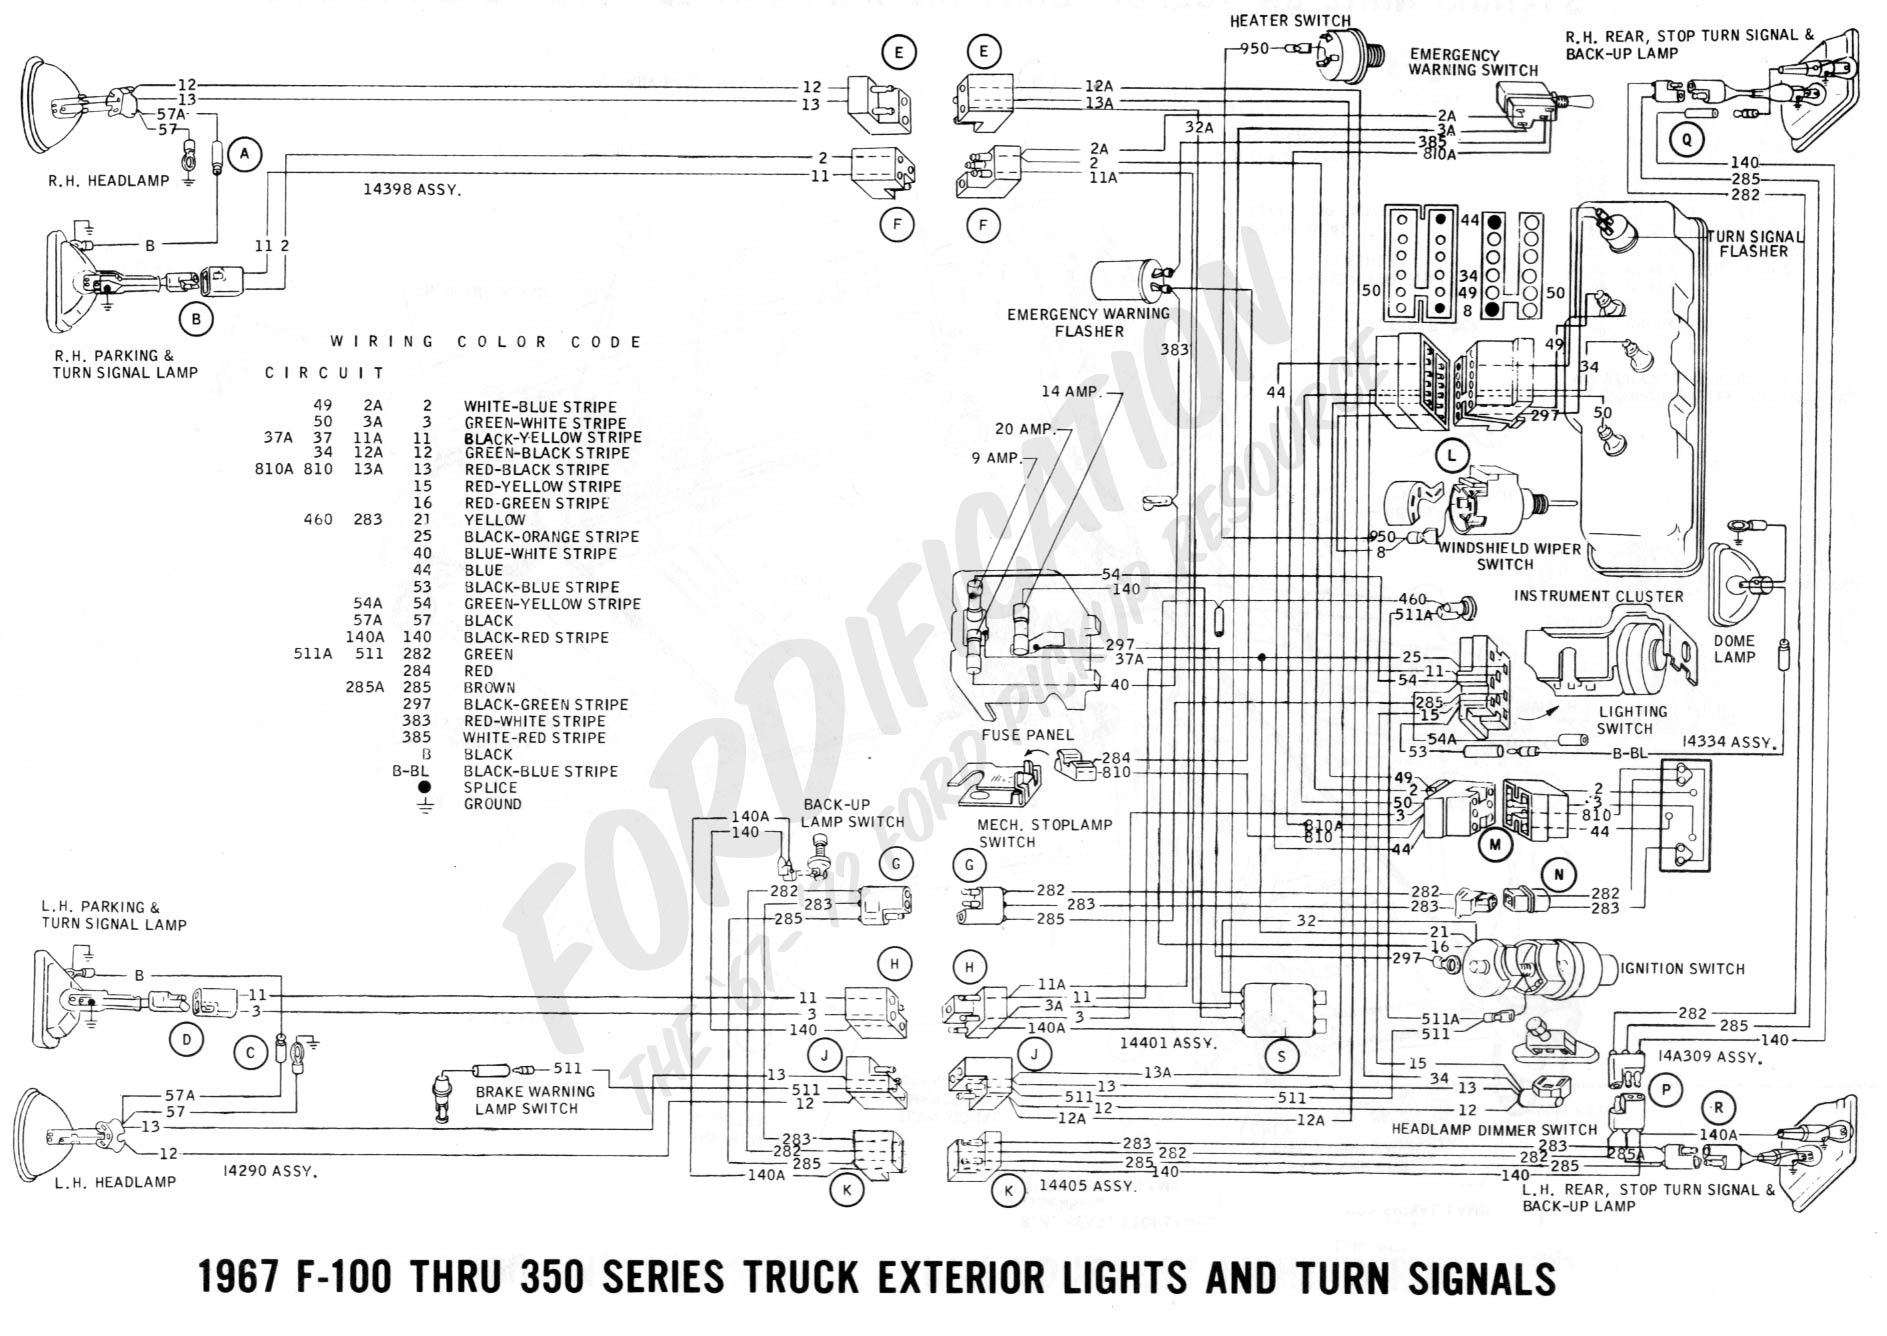 hight resolution of 2006 ford f250 wiring diagram wiring diagram forward 2006 ford f250 instrument cluster wiring diagram 06 ford f250 wiring diagram